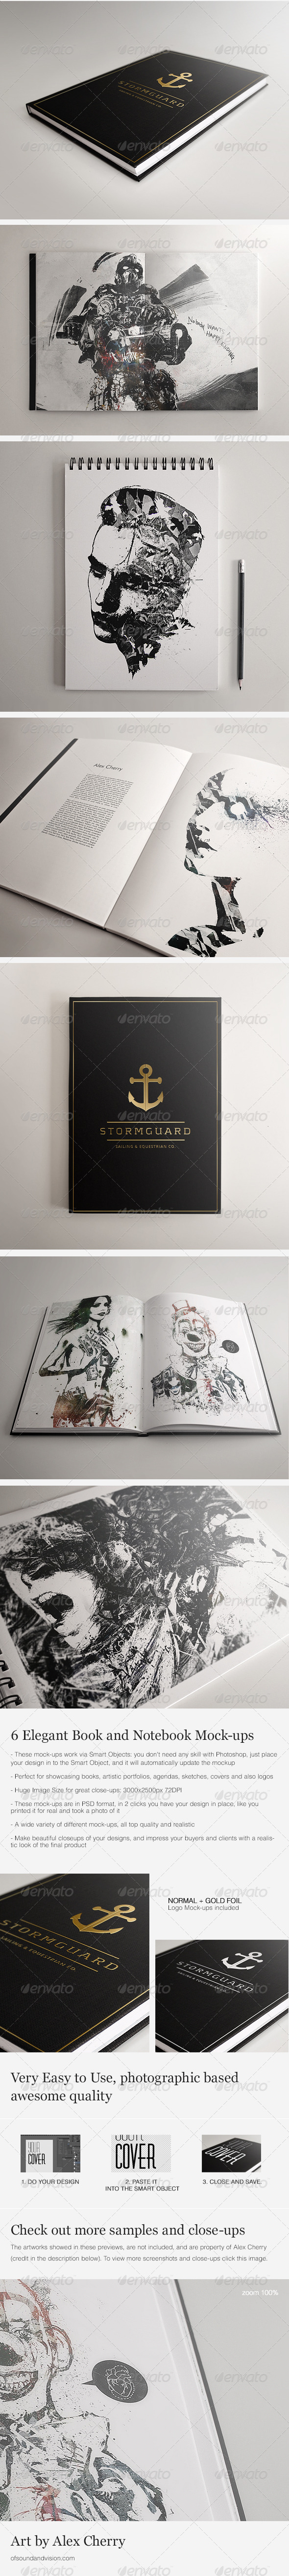 Book and Notebook Elegant Mock-ups - Print Product Mock-Ups